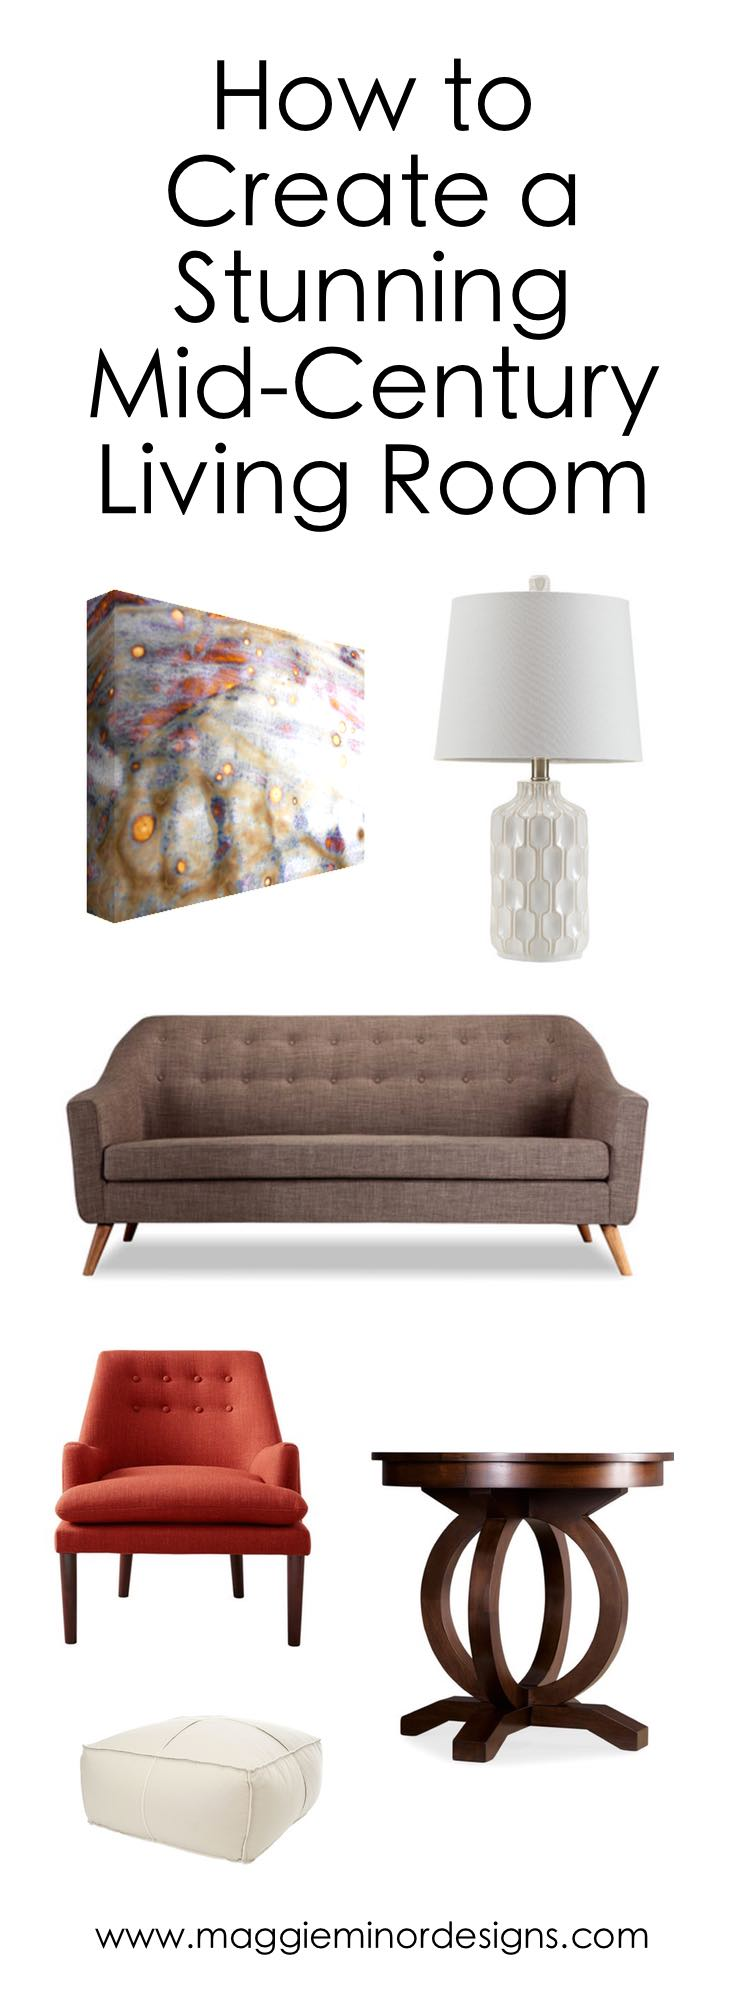 How to Create a Stunning Mid-Century Living Room